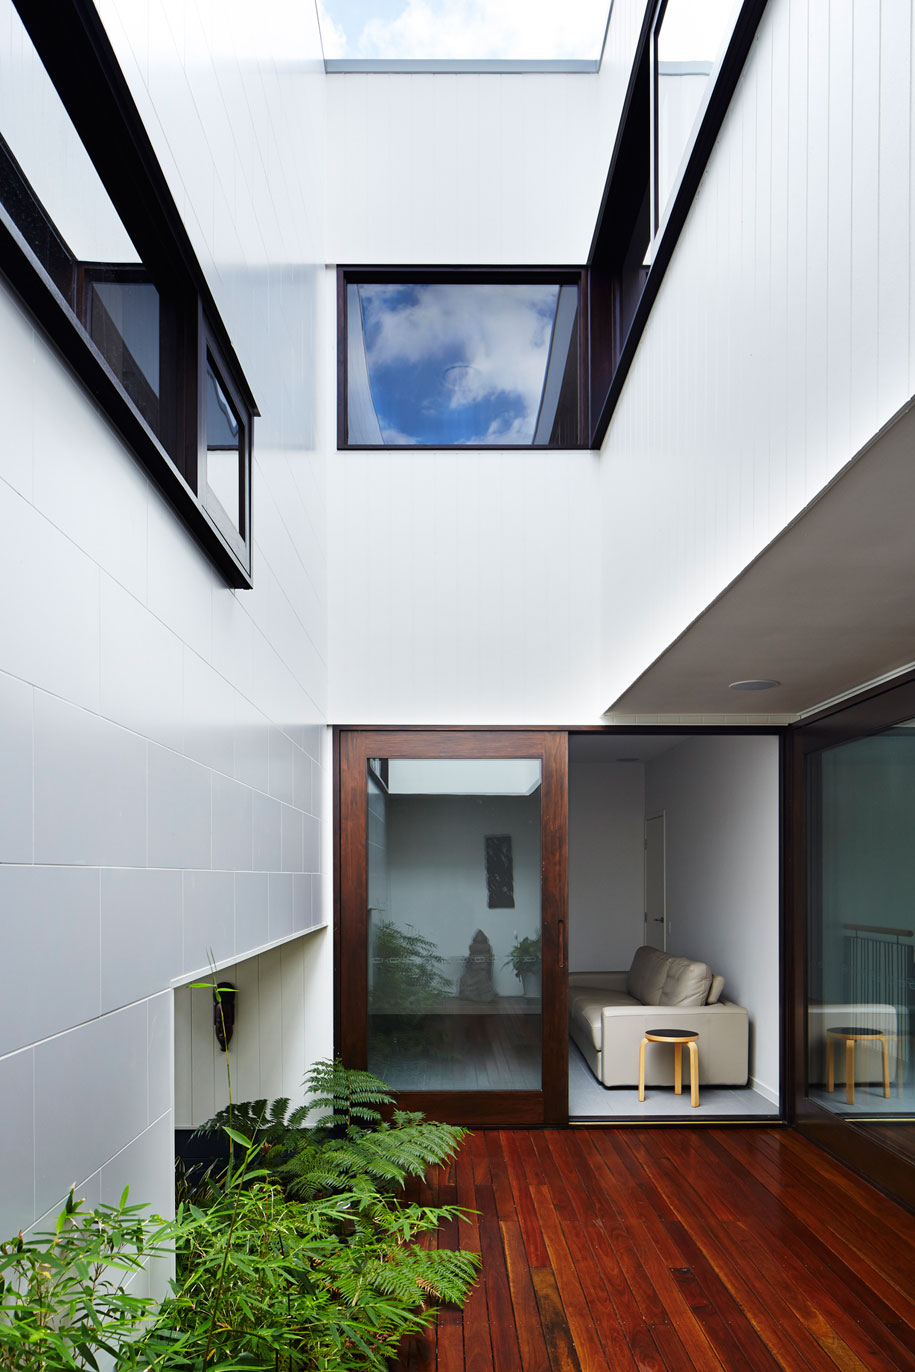 West-End-House-Plazibat-Architects-Photogrpahy-Alicia-Taylor-Habitus-Living-02